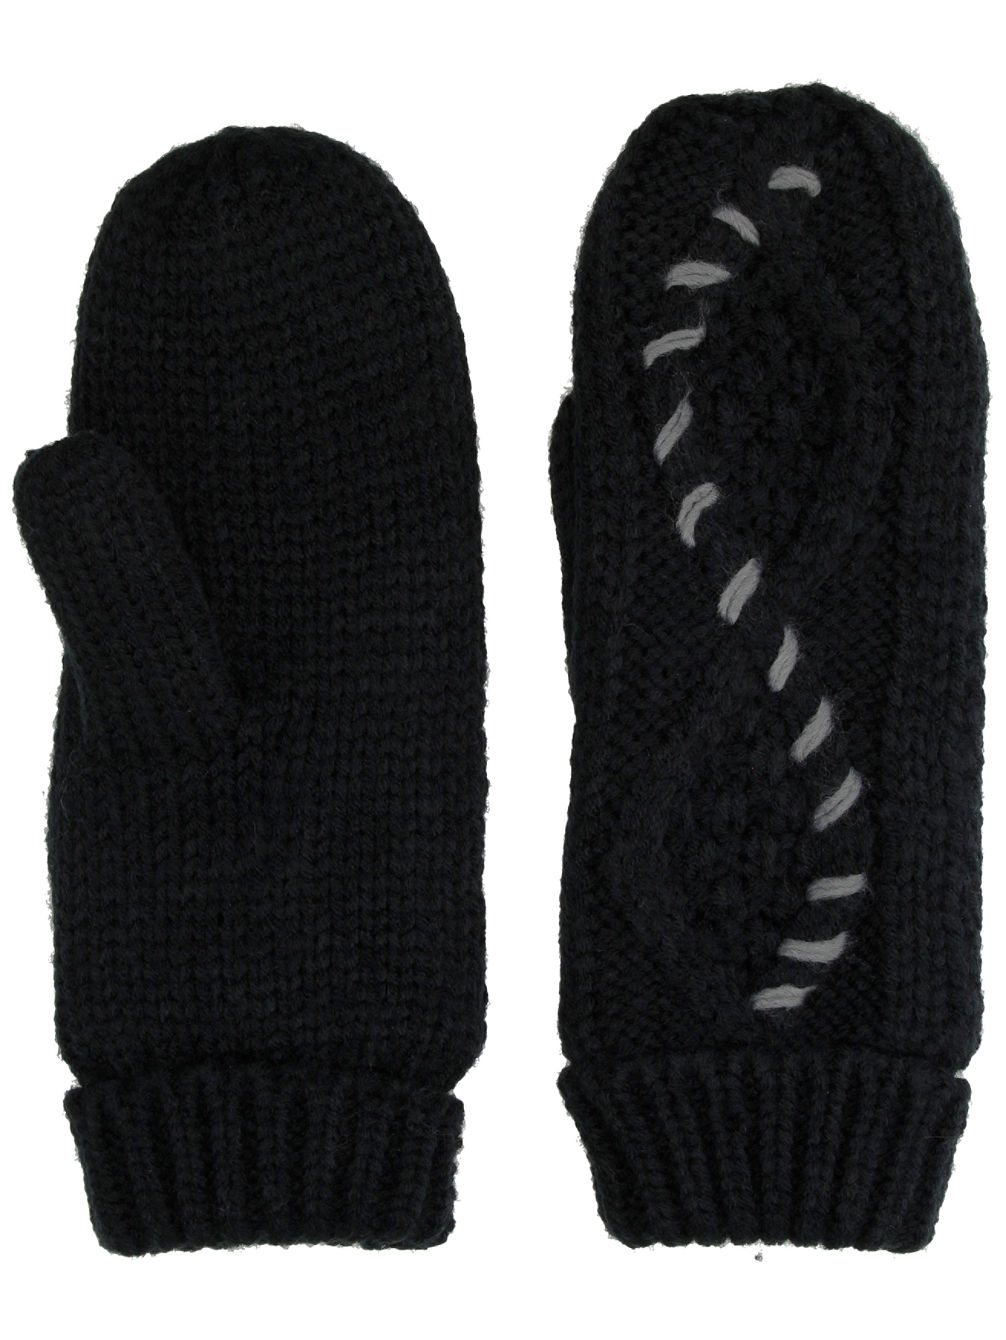 Cable Knit Handschuhe